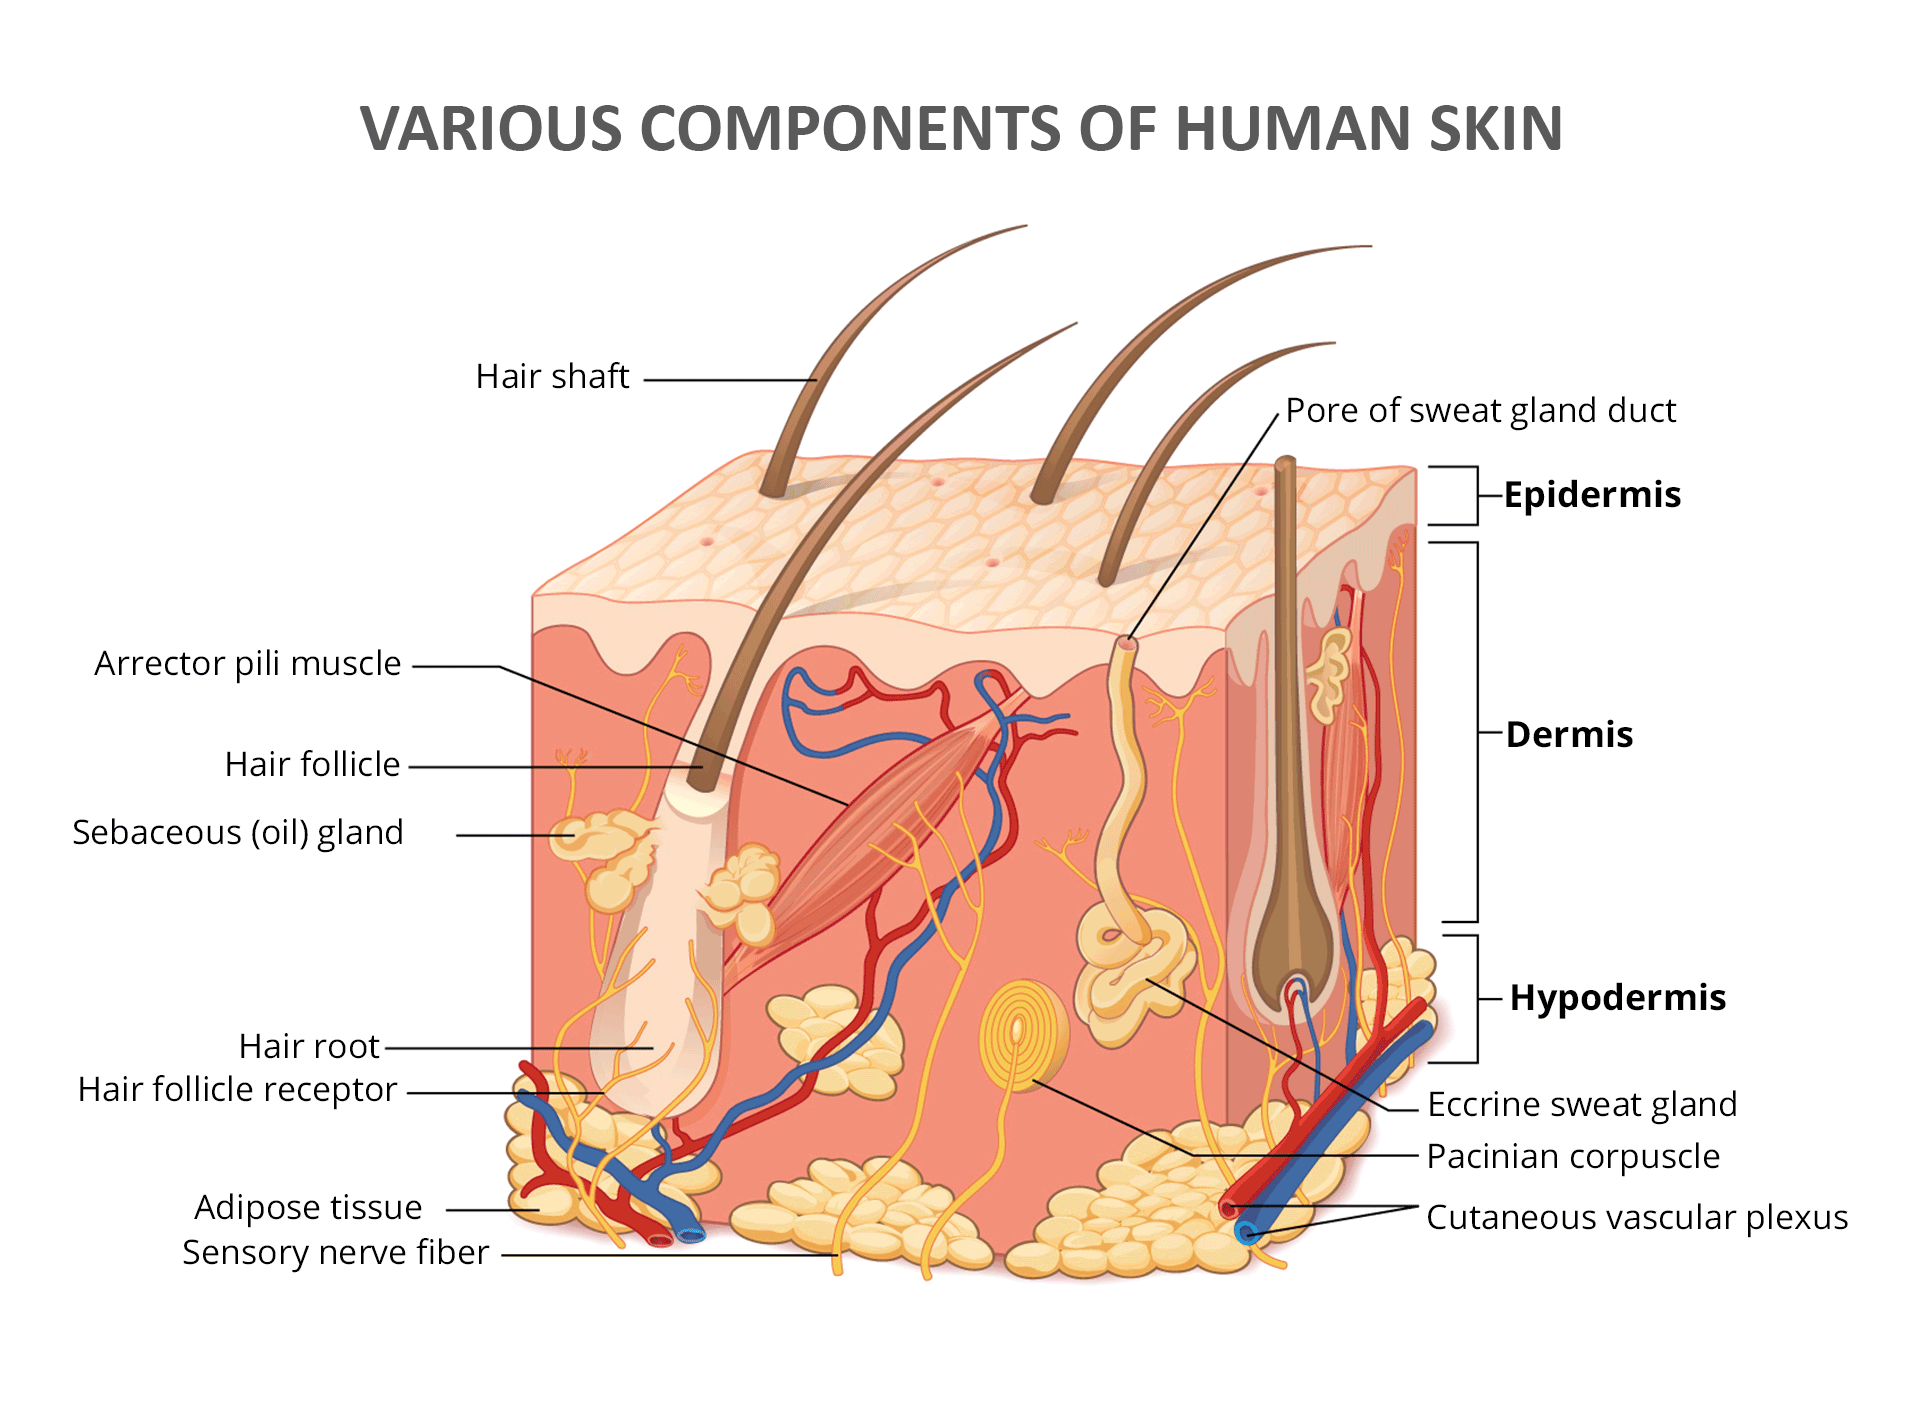 The Structure of Human Skin - Epidermis, Dermis, Hypodermis